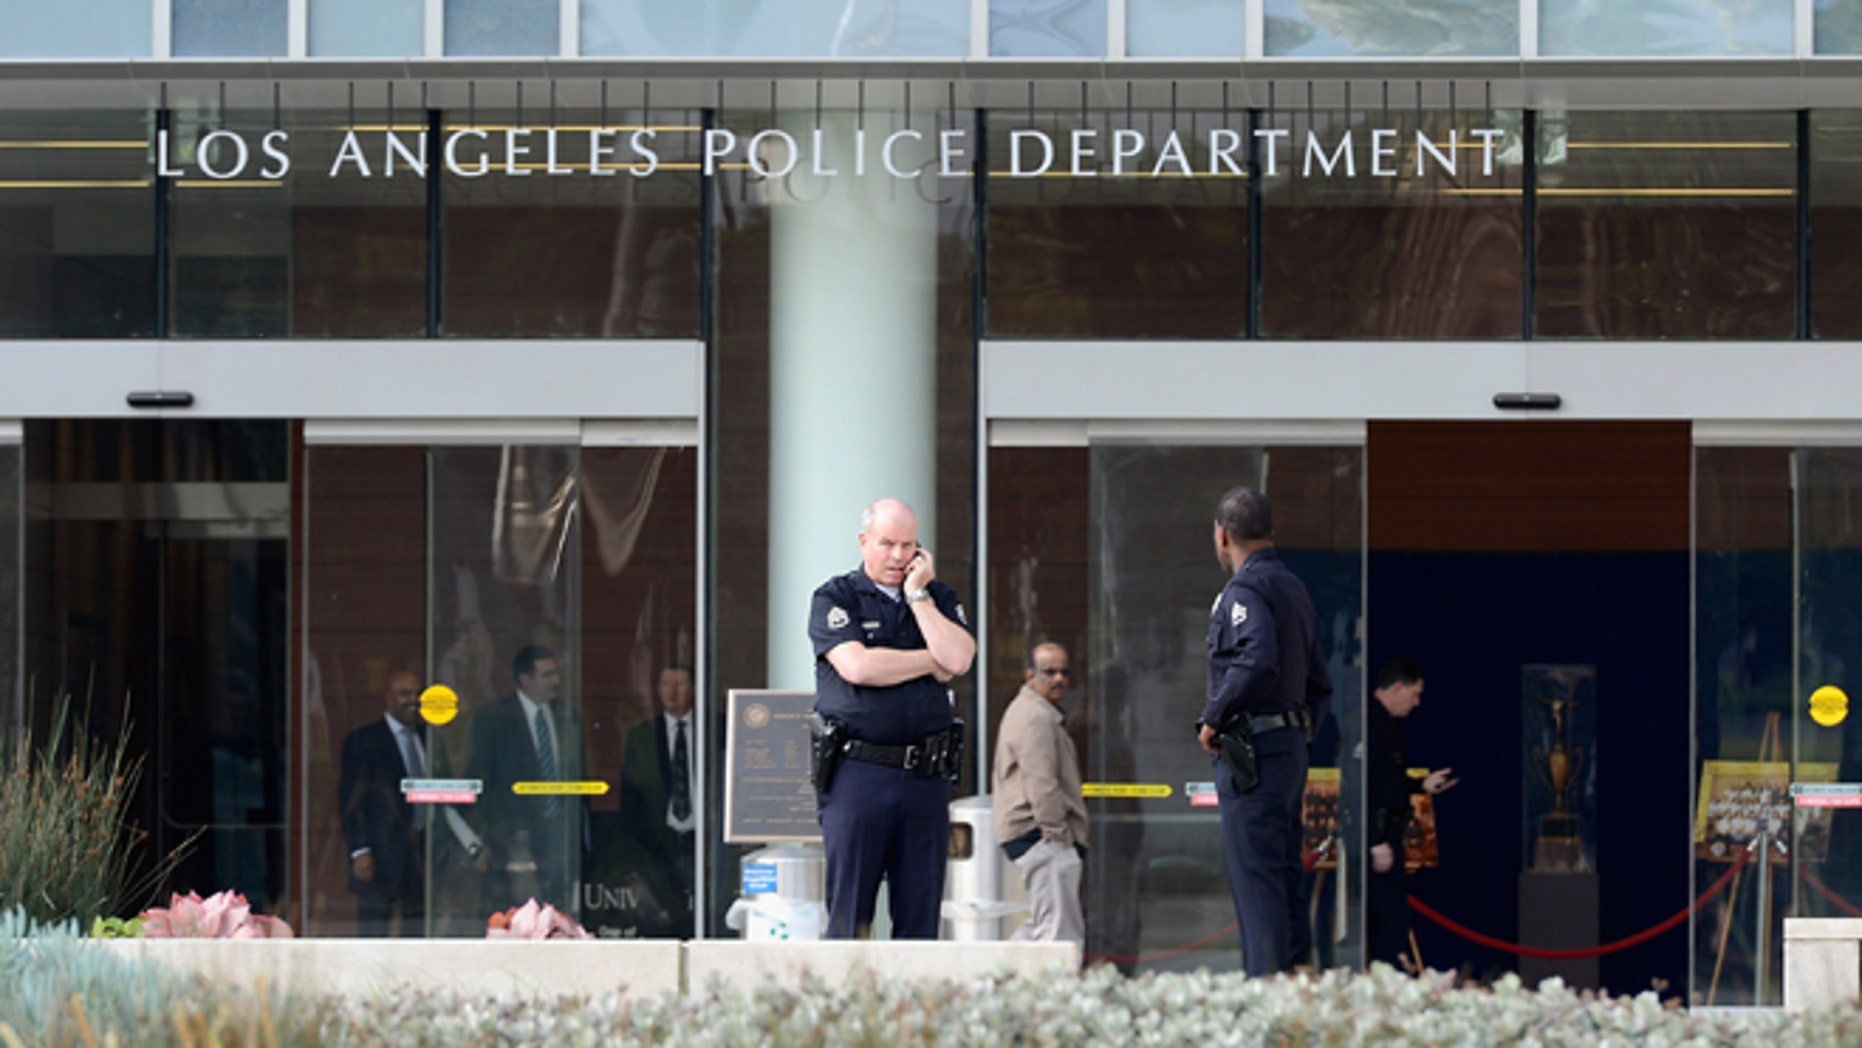 LAPD officers are deployed around the police headquarters on February 7, 2013 in Los Angeles.